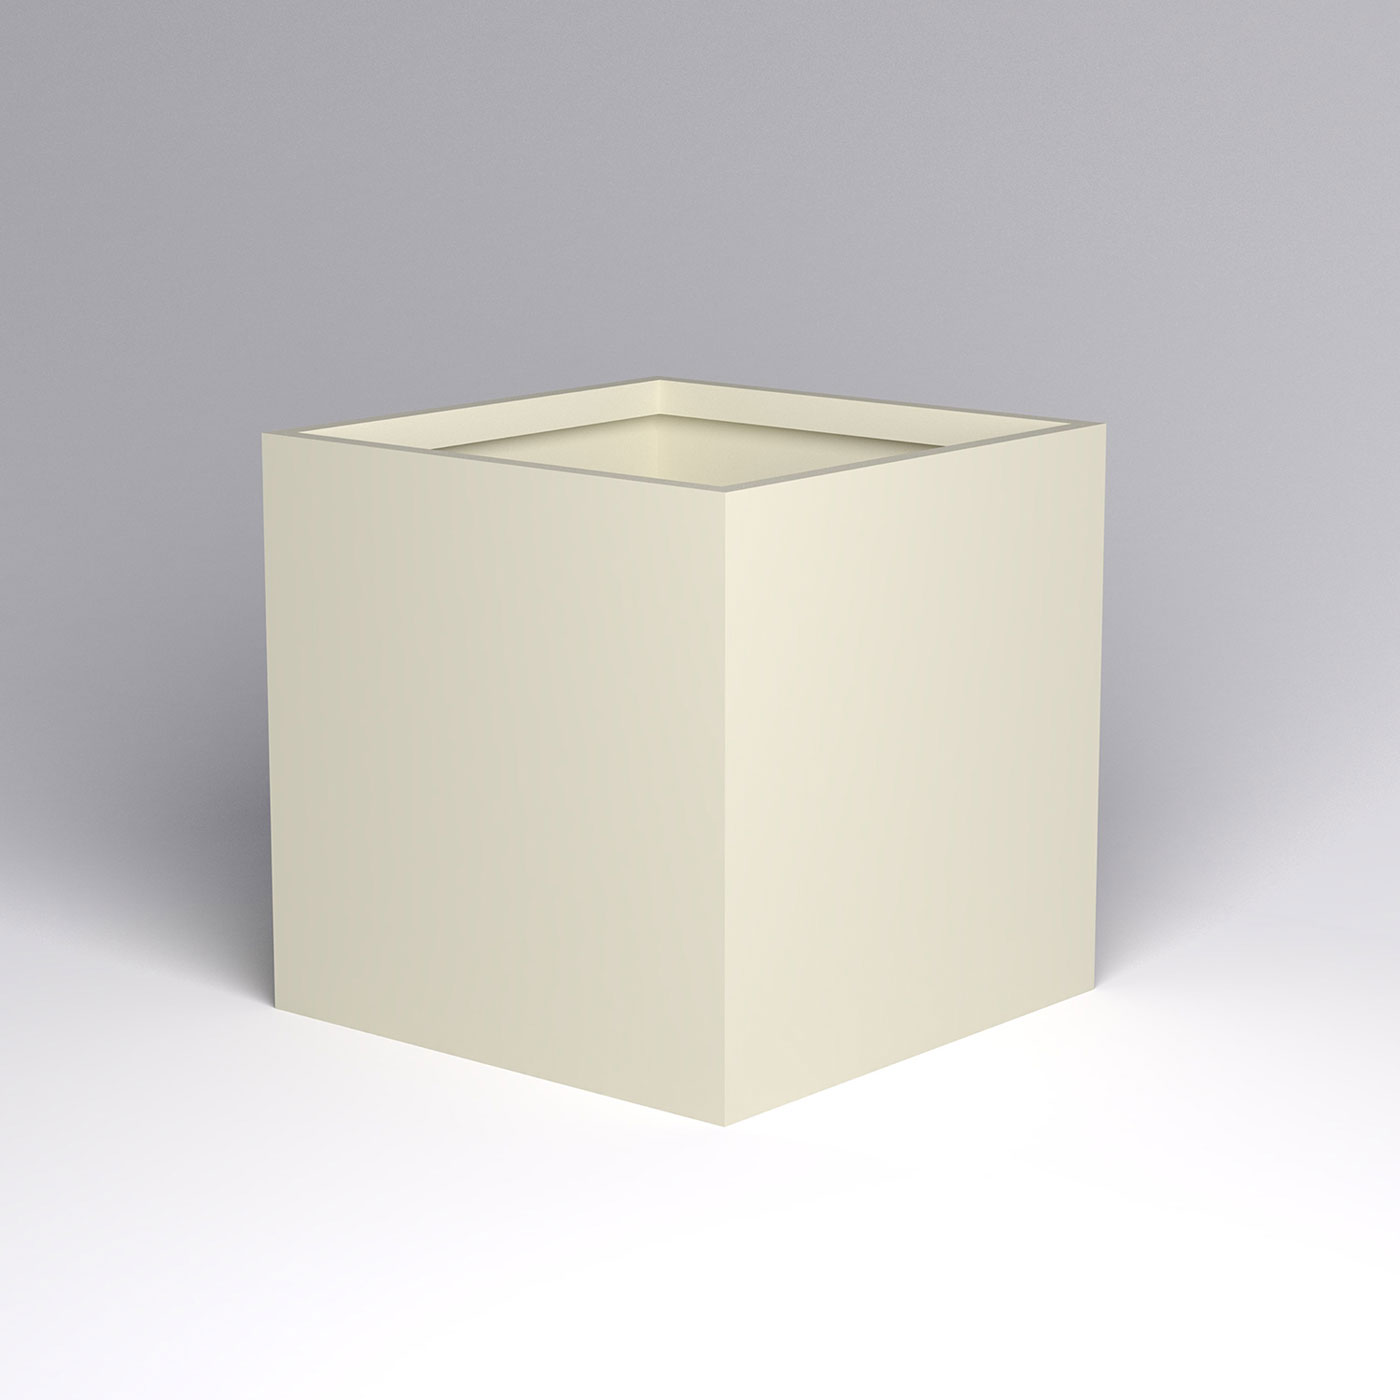 Large Modern Square Planter 48 X 48